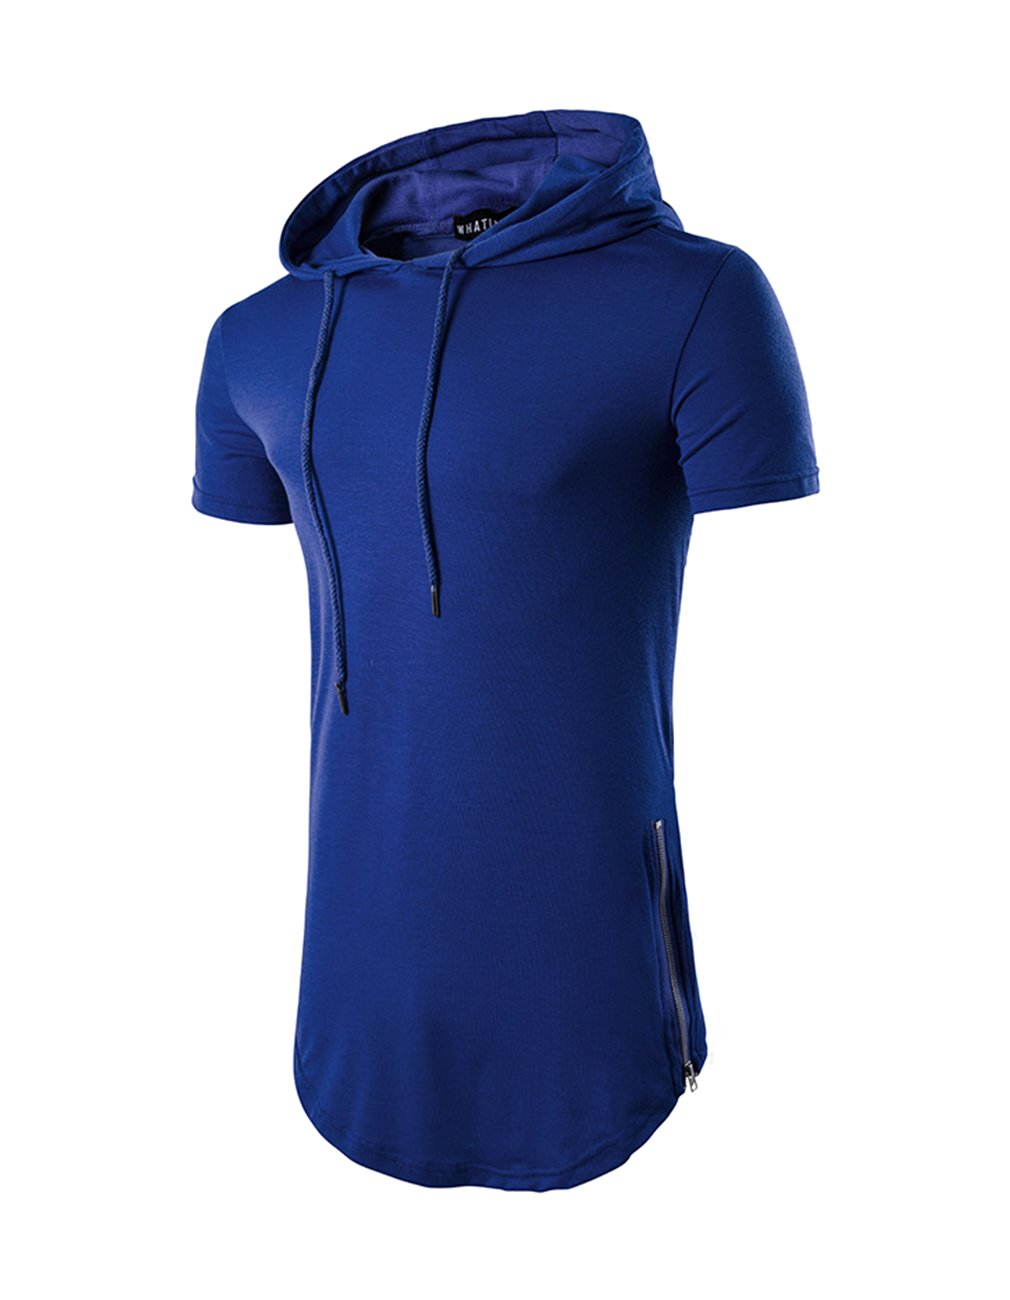 Men's Hipster Hip Hop Hoodies Side Zipper T Shirt Casual Cotton Pullover Hoodies Shirts (Small, Blue) by Miskely